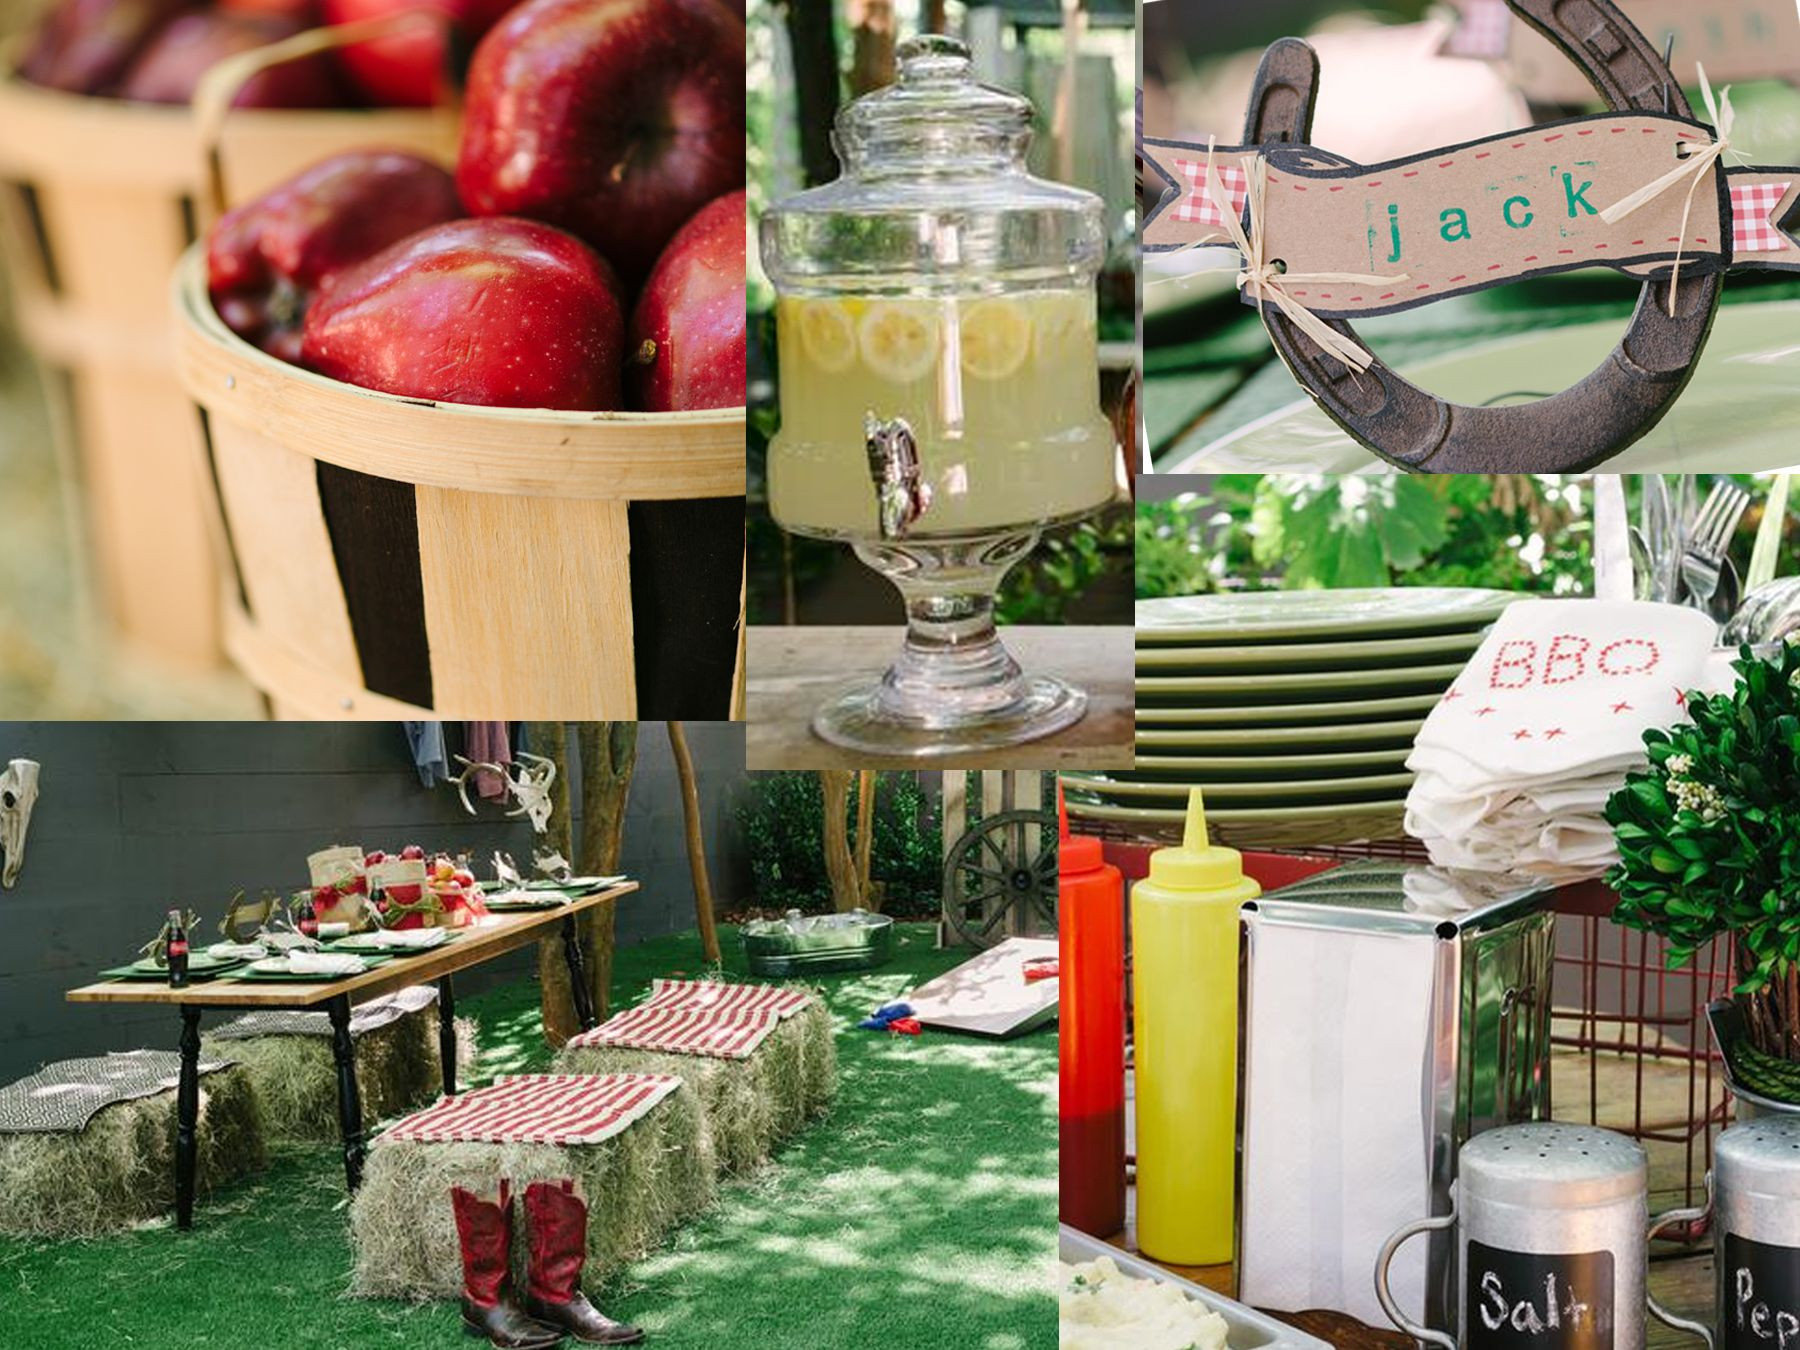 Backyard Bbq Party Decorating Ideas  Pin by DIY Network on DIY Parties